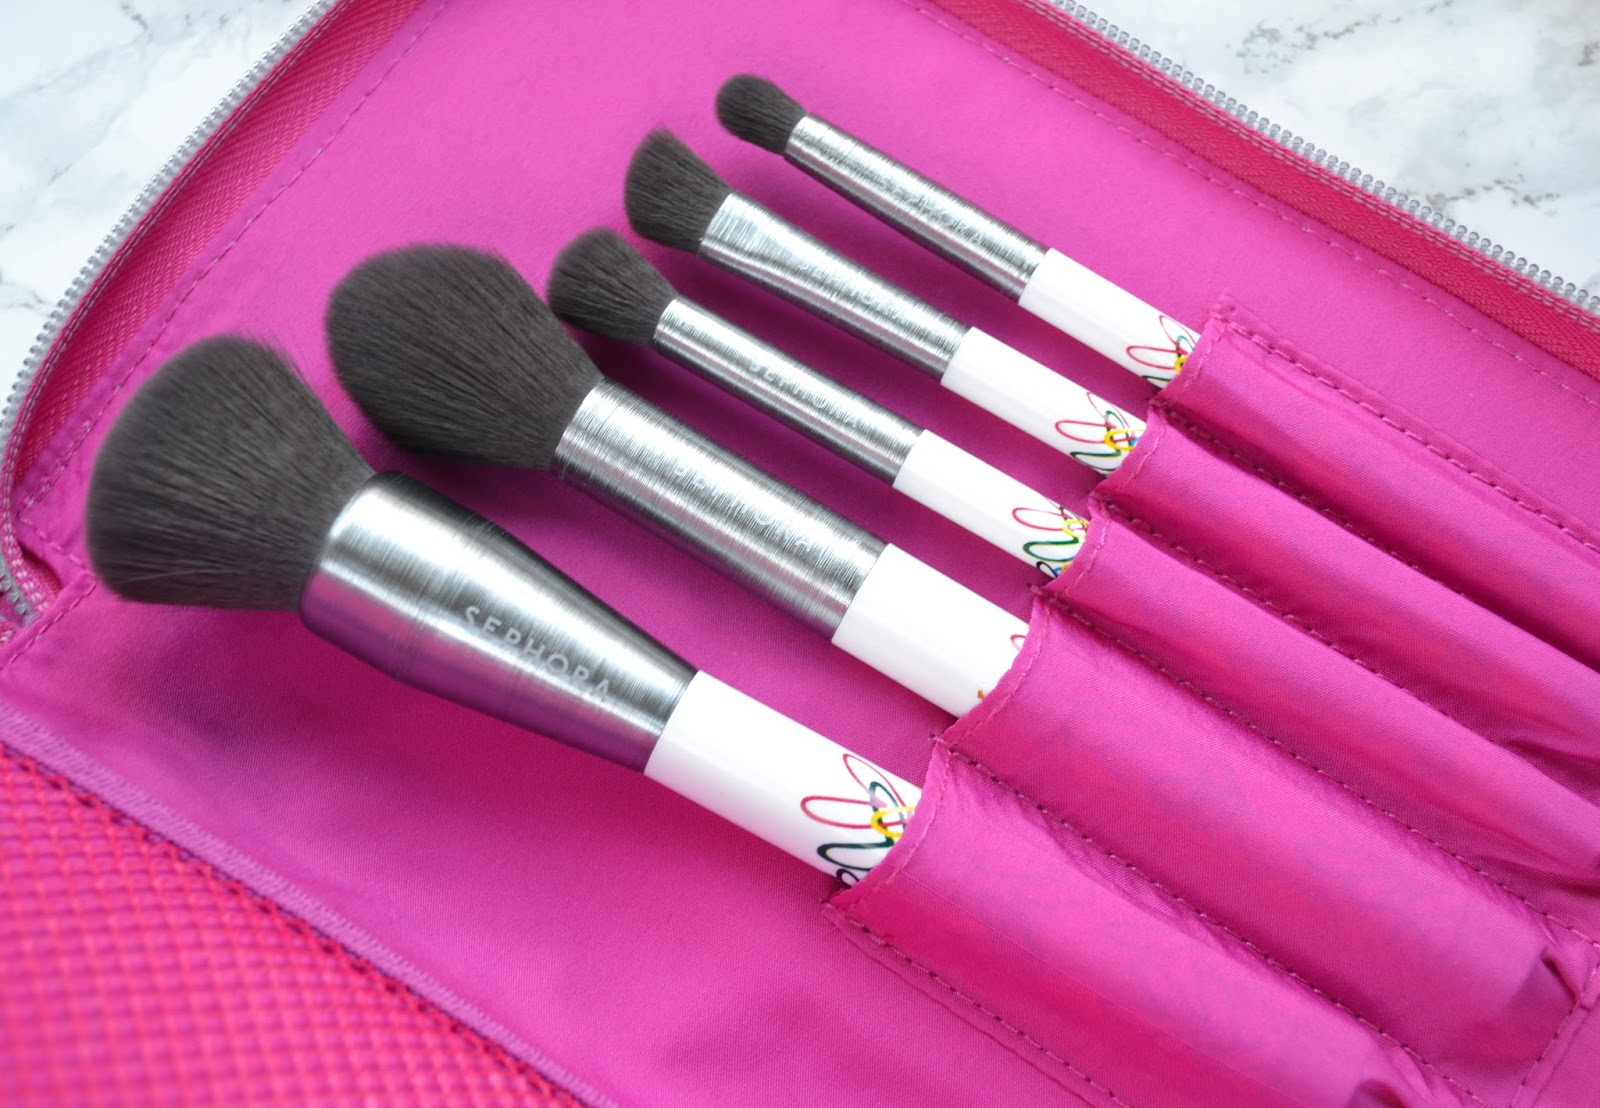 BEAUTY TOOLS | Sephora JGoldcrown Bleeding Hearts Brush Set